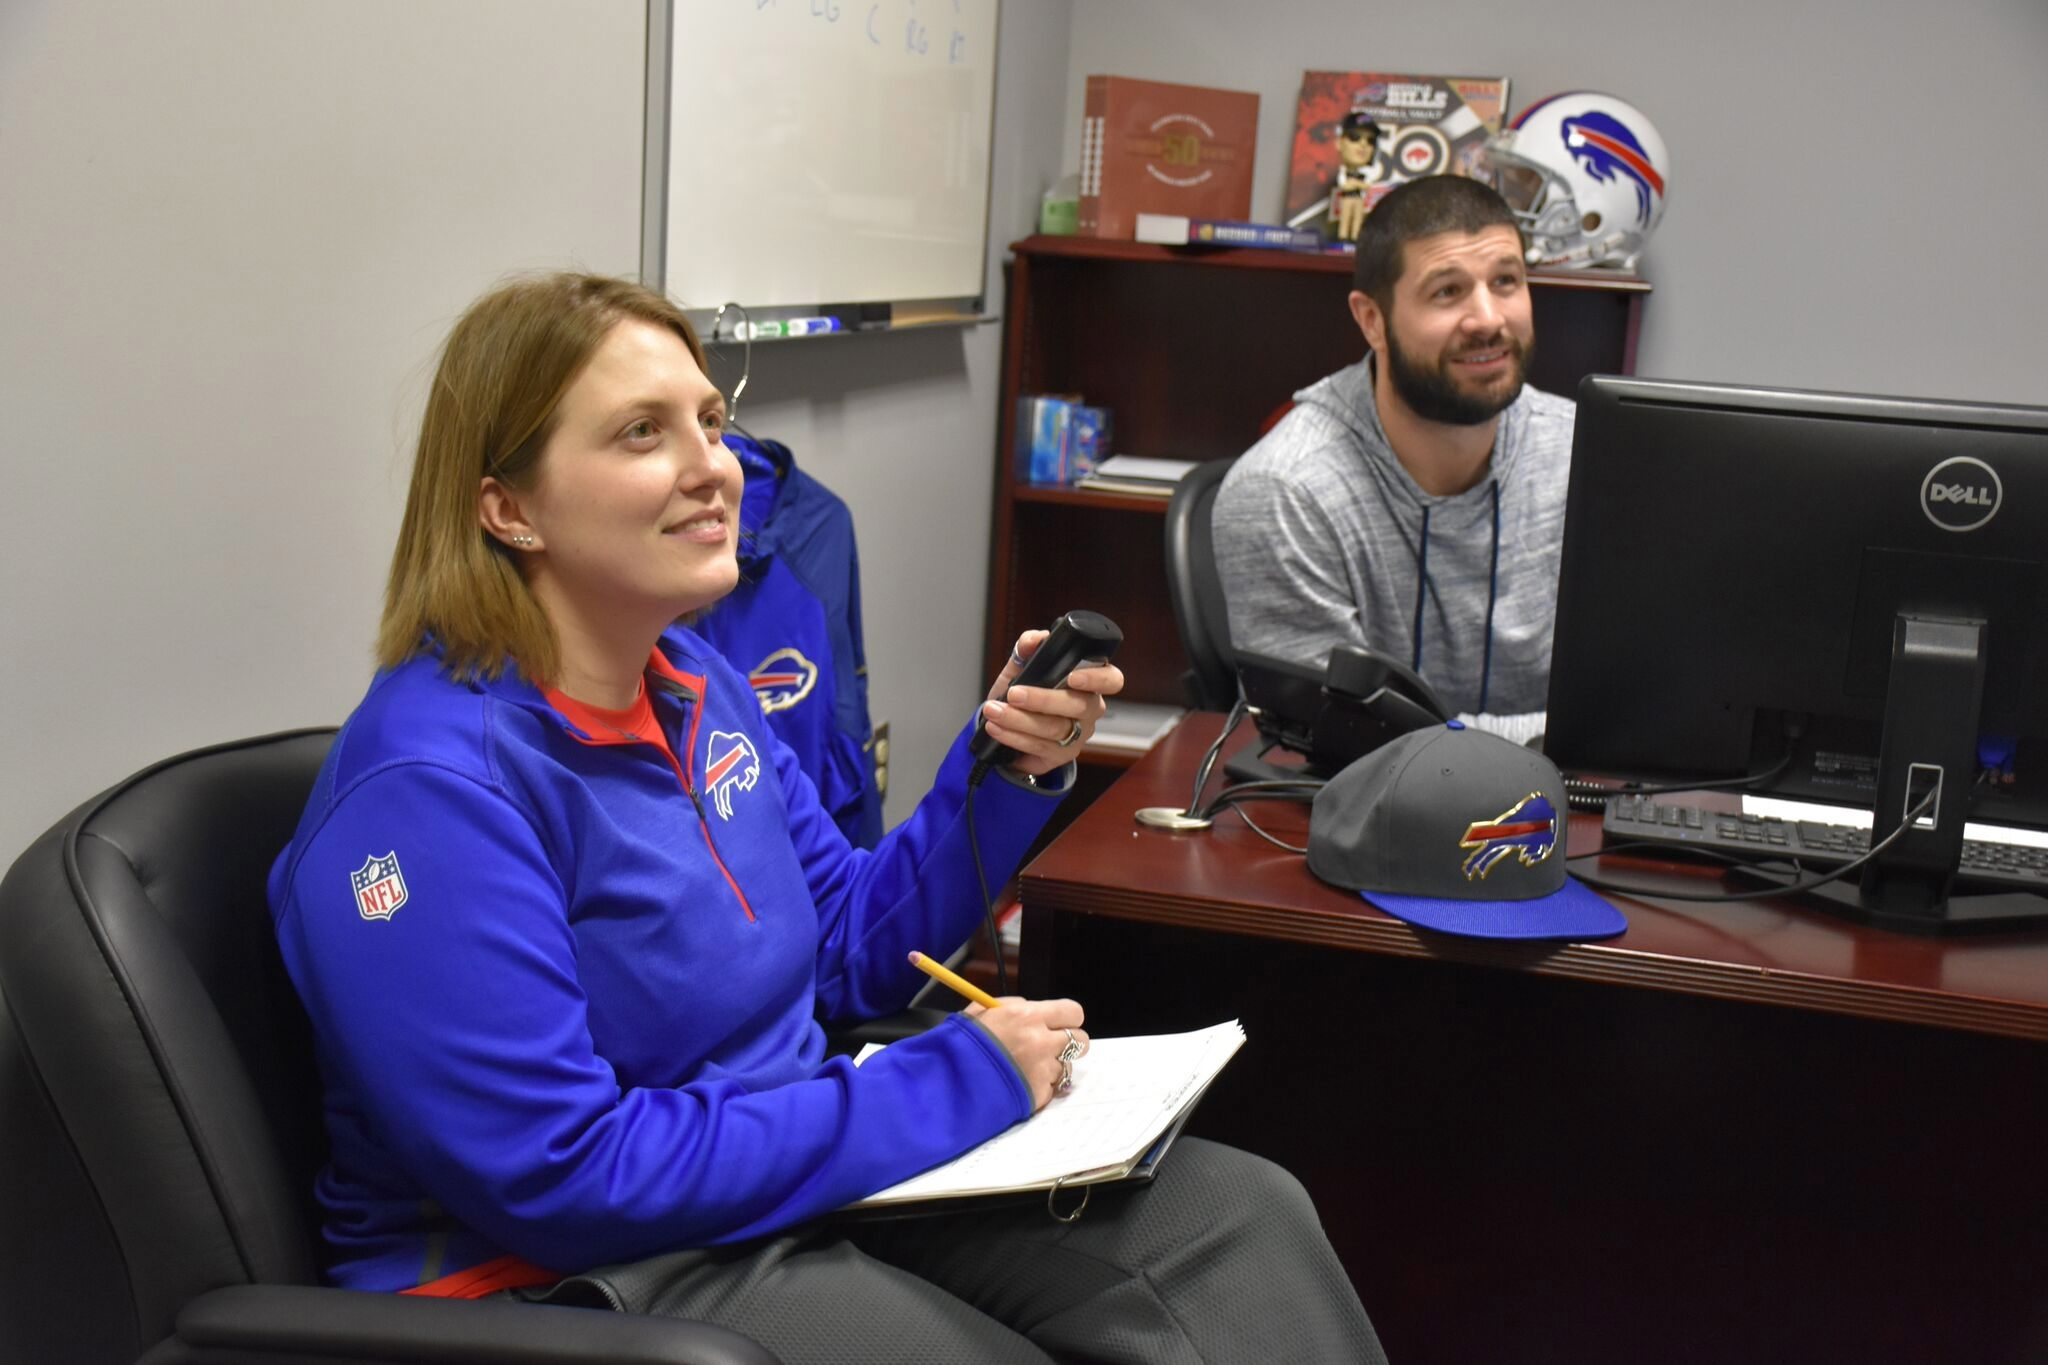 Among the likely duties for Bills quality control-special teams coach Kathryn Smith will be watching game film of the Bills' upcoming opponents and preparing scouting reports.